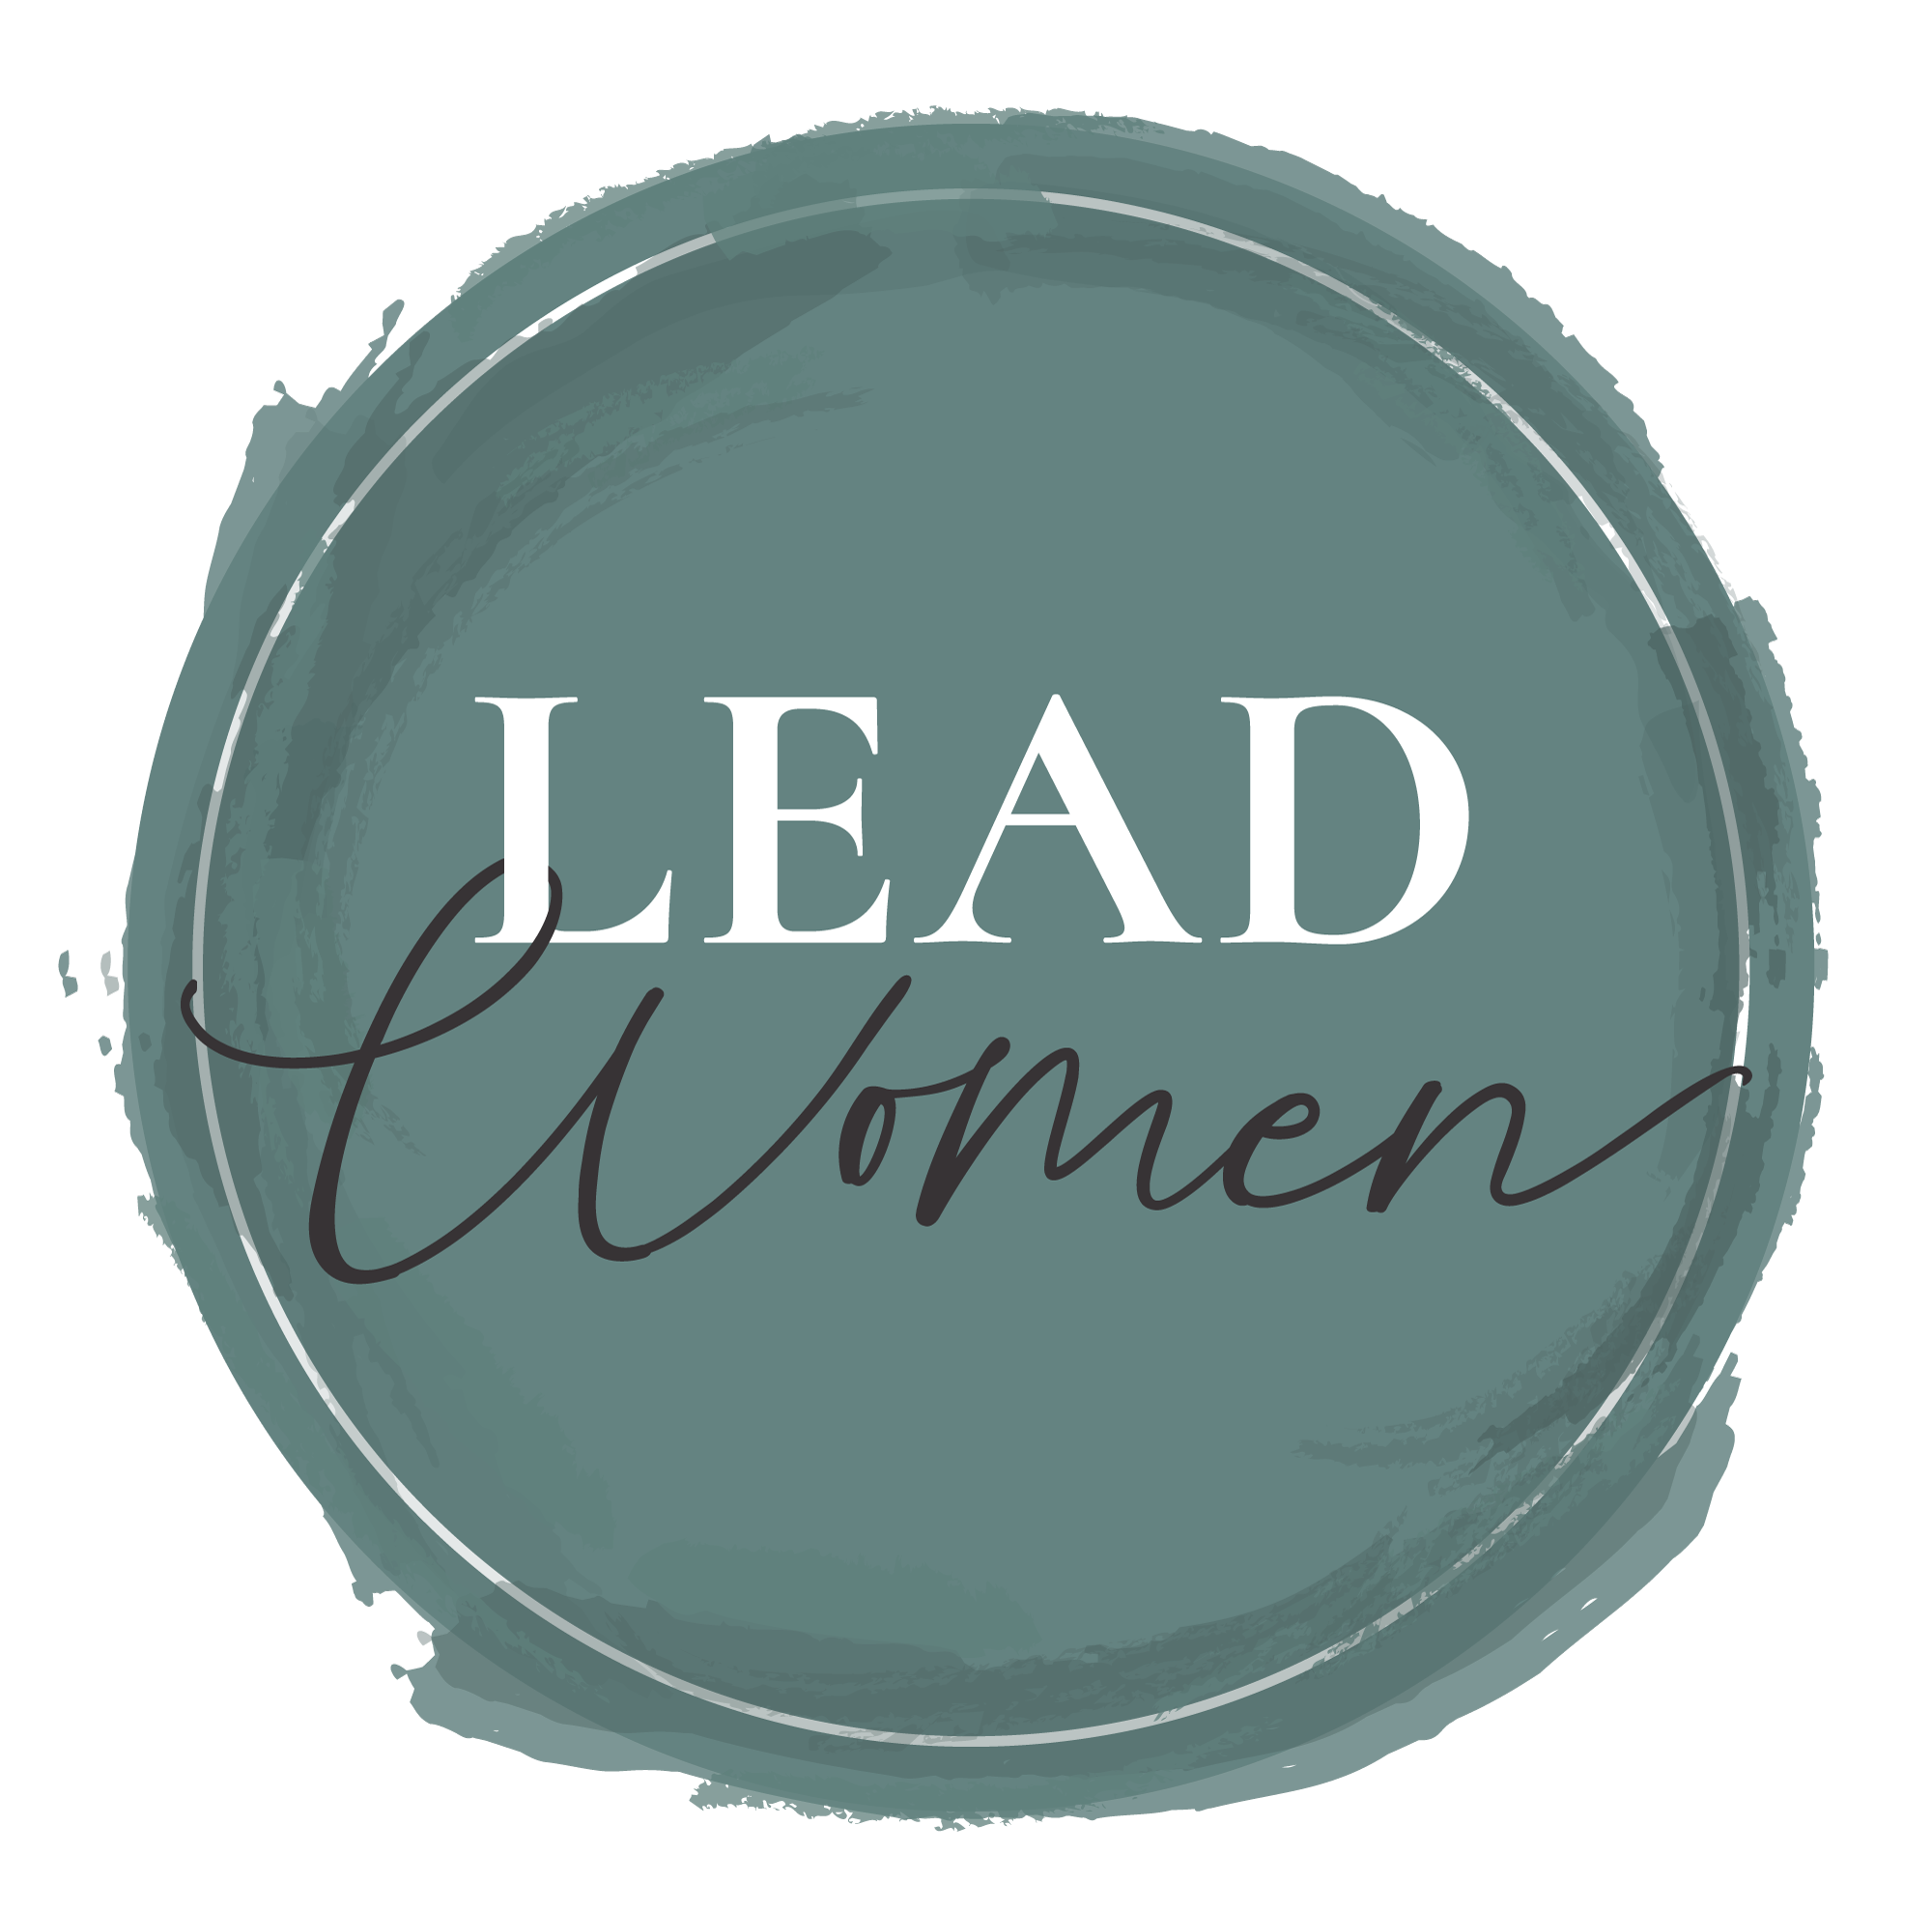 LEAD Women logo